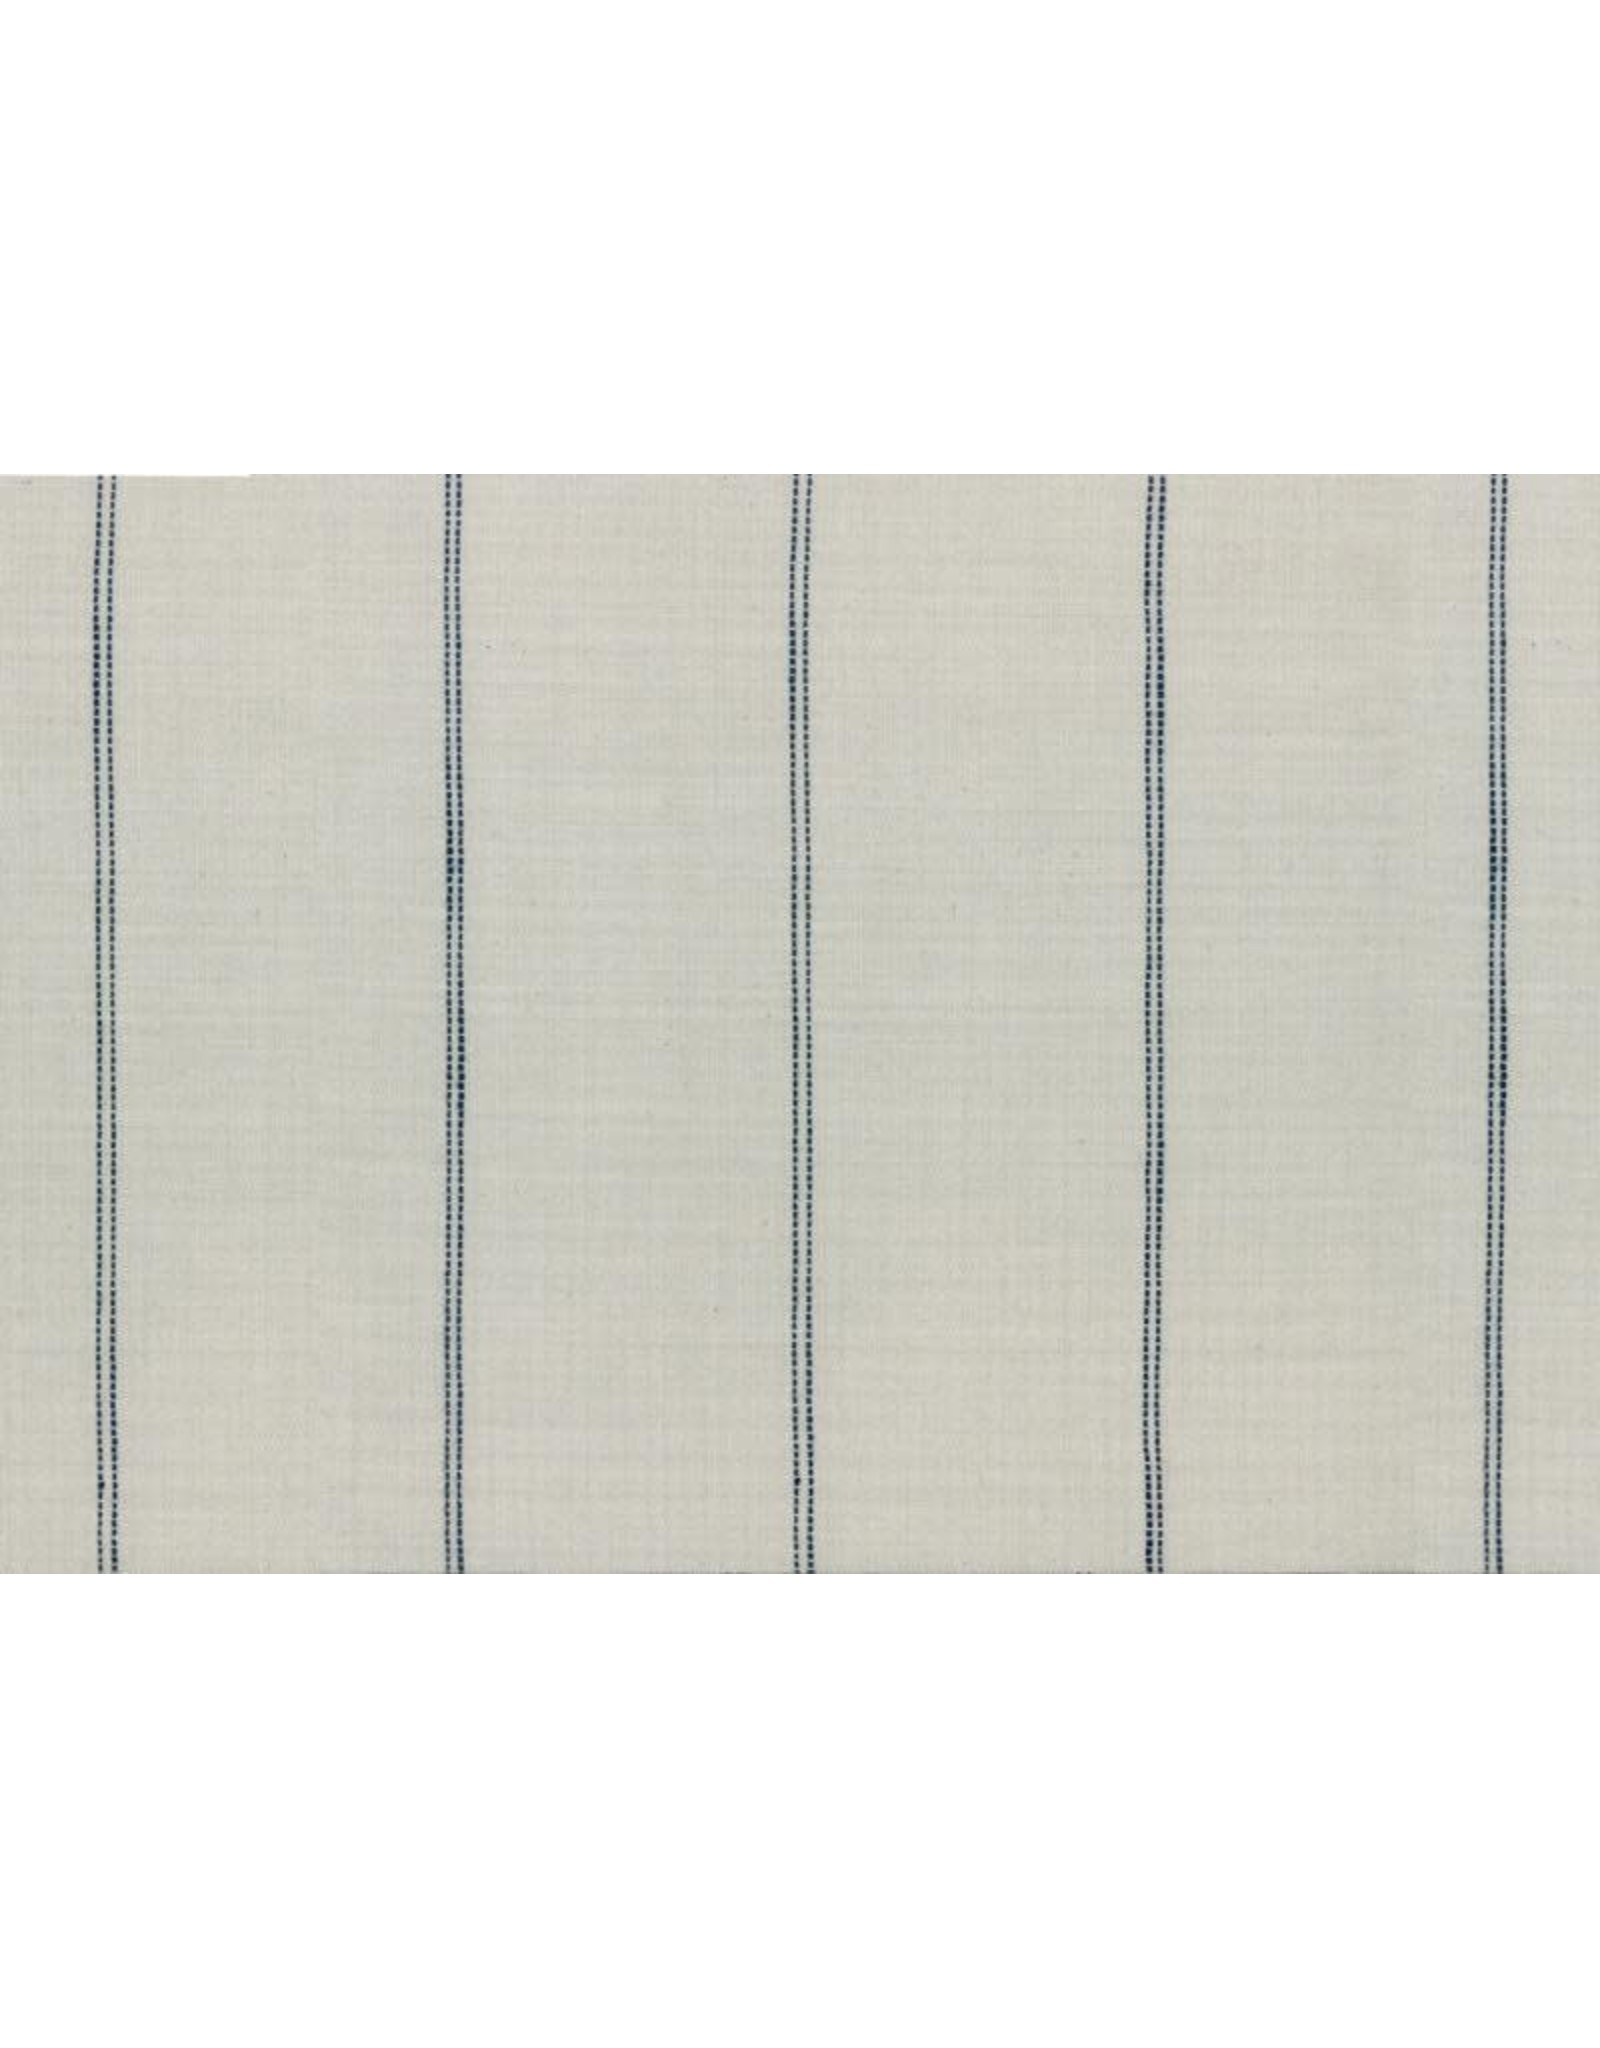 16 Picnic Point Tea Linen Toweling 992 230 by Moda